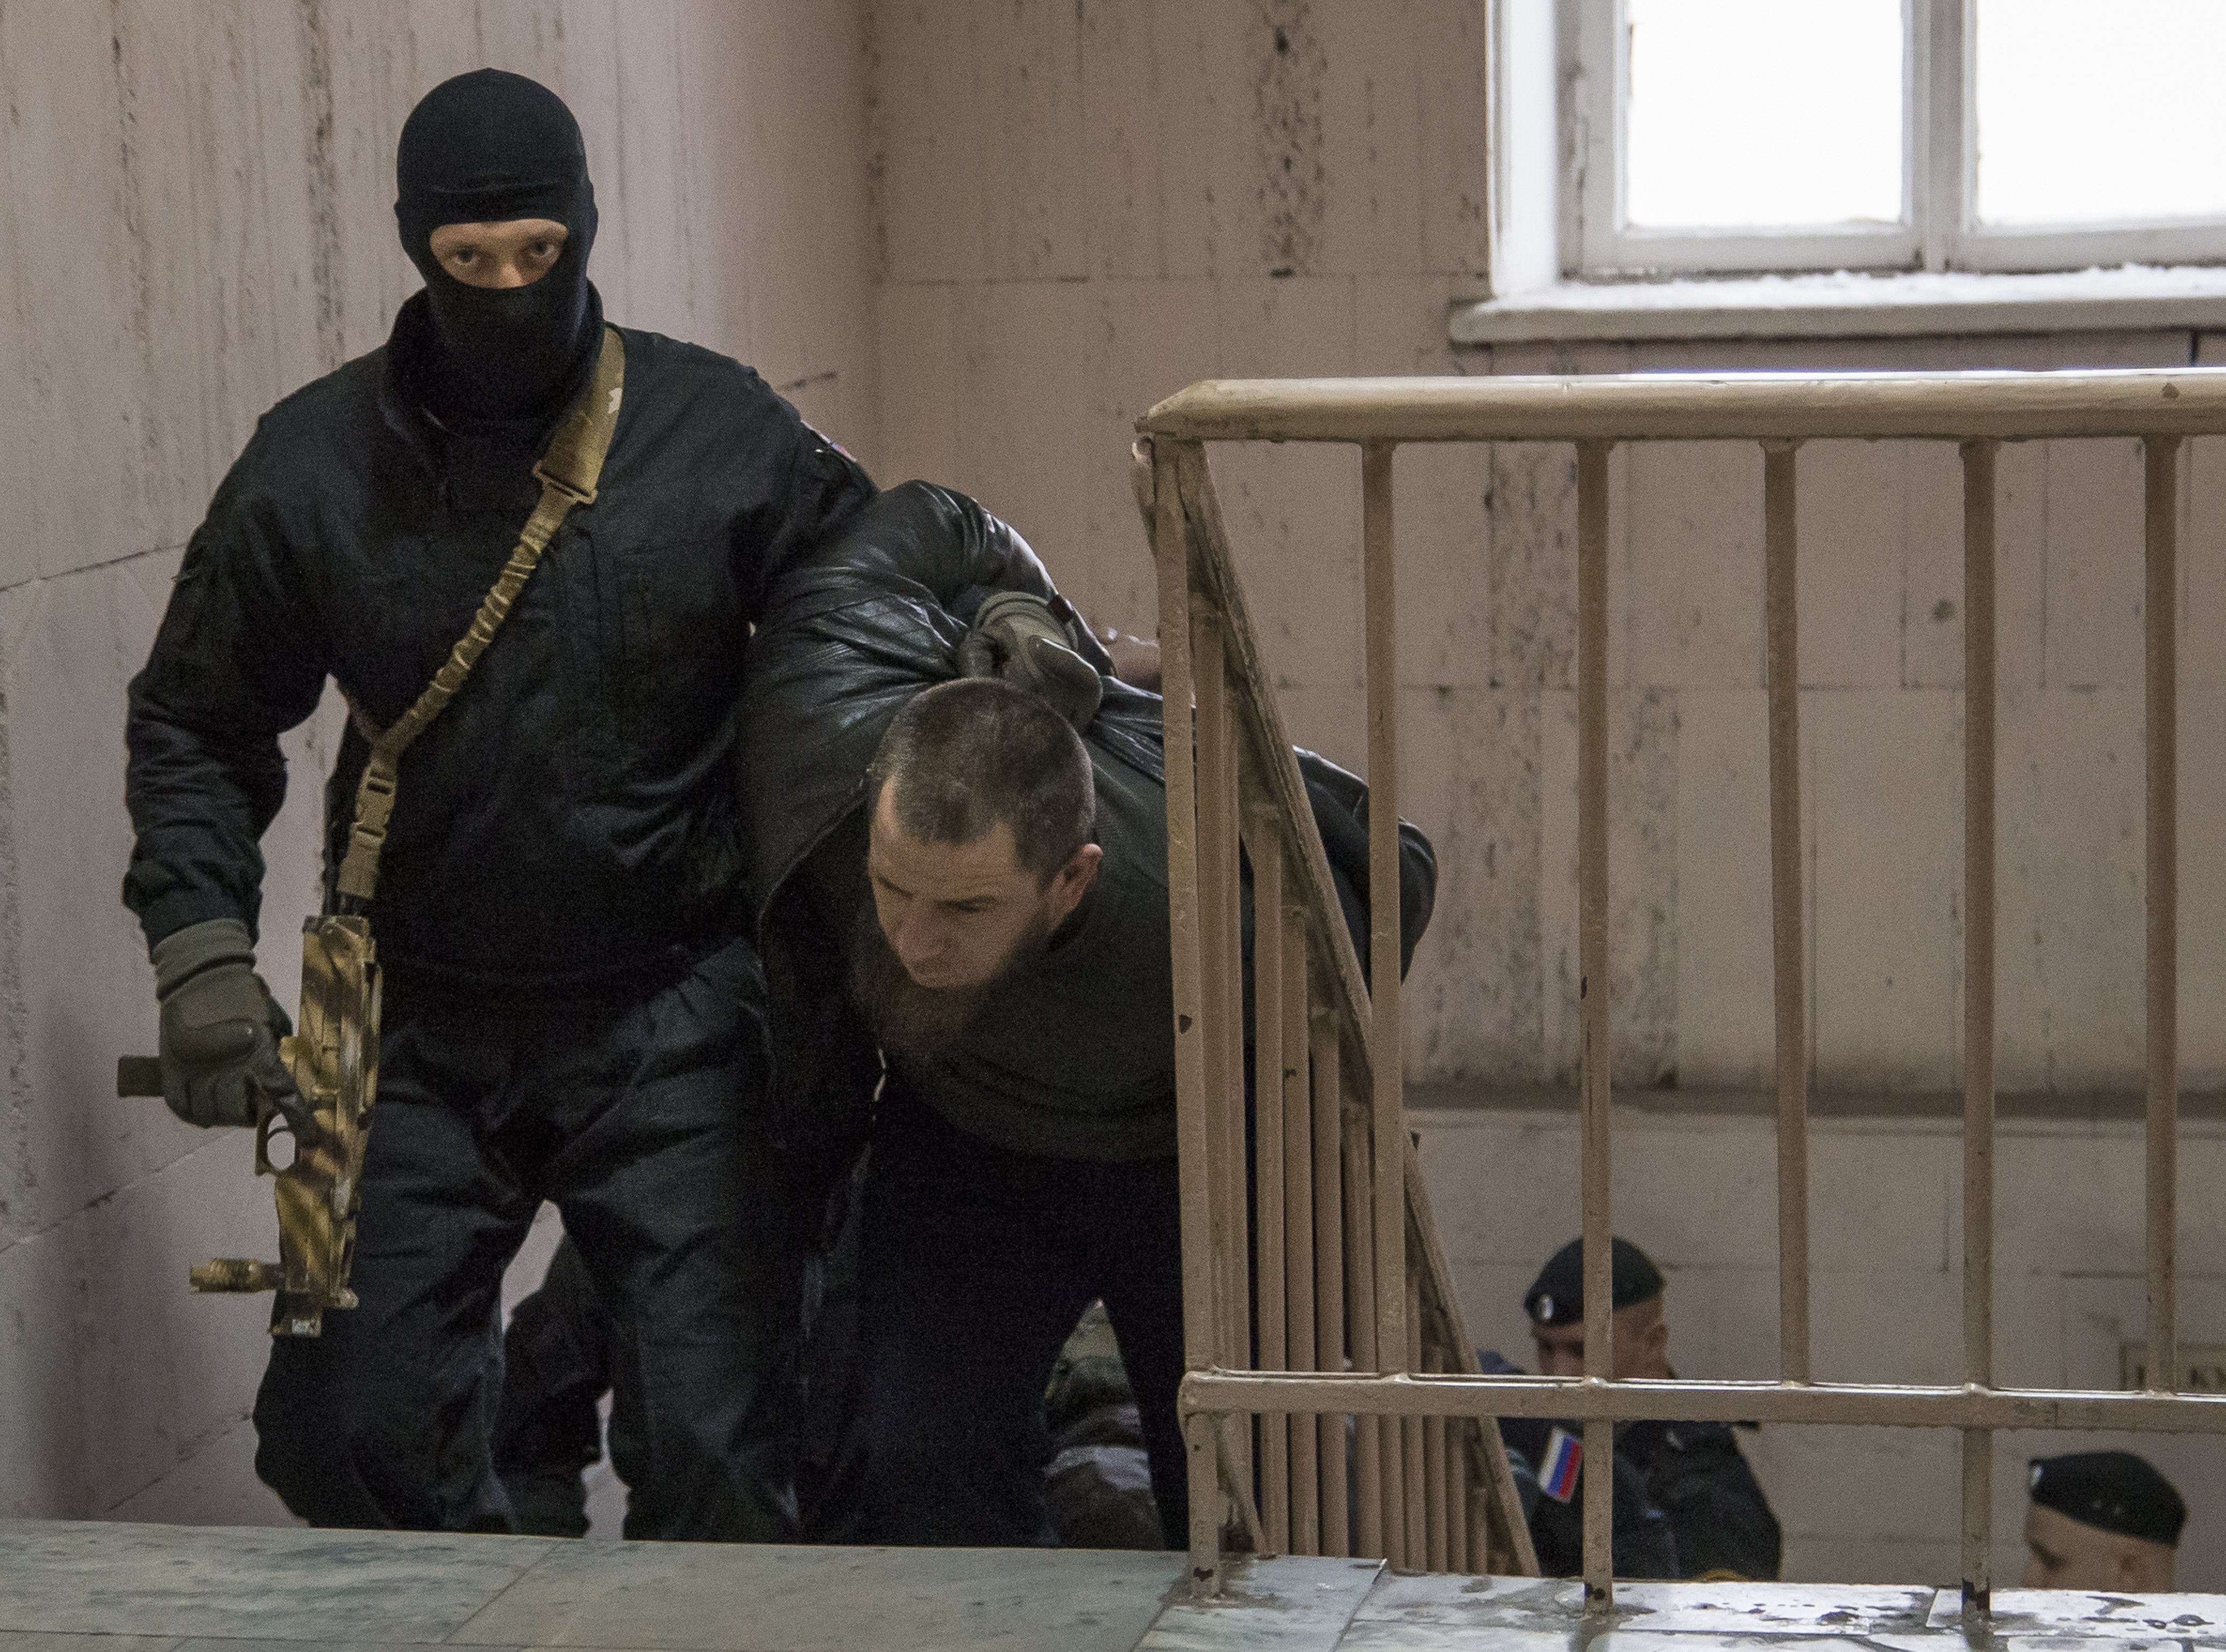 ADDING NAME OF MAN- Police escort Tamerlan Eskerkhanov believed to be one of five suspects in the killing of Boris Nemtsov in a court room in Moscow, Russia, Sunday, March 8, 2015. Five suspects in the killing of prominent Russian opposition figure Boris Nemtsov have been delivered to the court for arraignment, the spokeswoman for a Moscow court said Sunday. The statement by Anna Fedeeva to reporters outside the courthouse came one day after the Federal Security service said two suspects had been detained. Russian news agencies late Saturday reported that two others had been detained, and Investigative Committee spokesman Vladimir Markin said Sunday there was a fifth suspect. Details remain vague in the case despite President Vladimir Putin's pledge to pursue the killers vigorously. (AP Photo/Ivan Sekretarev)